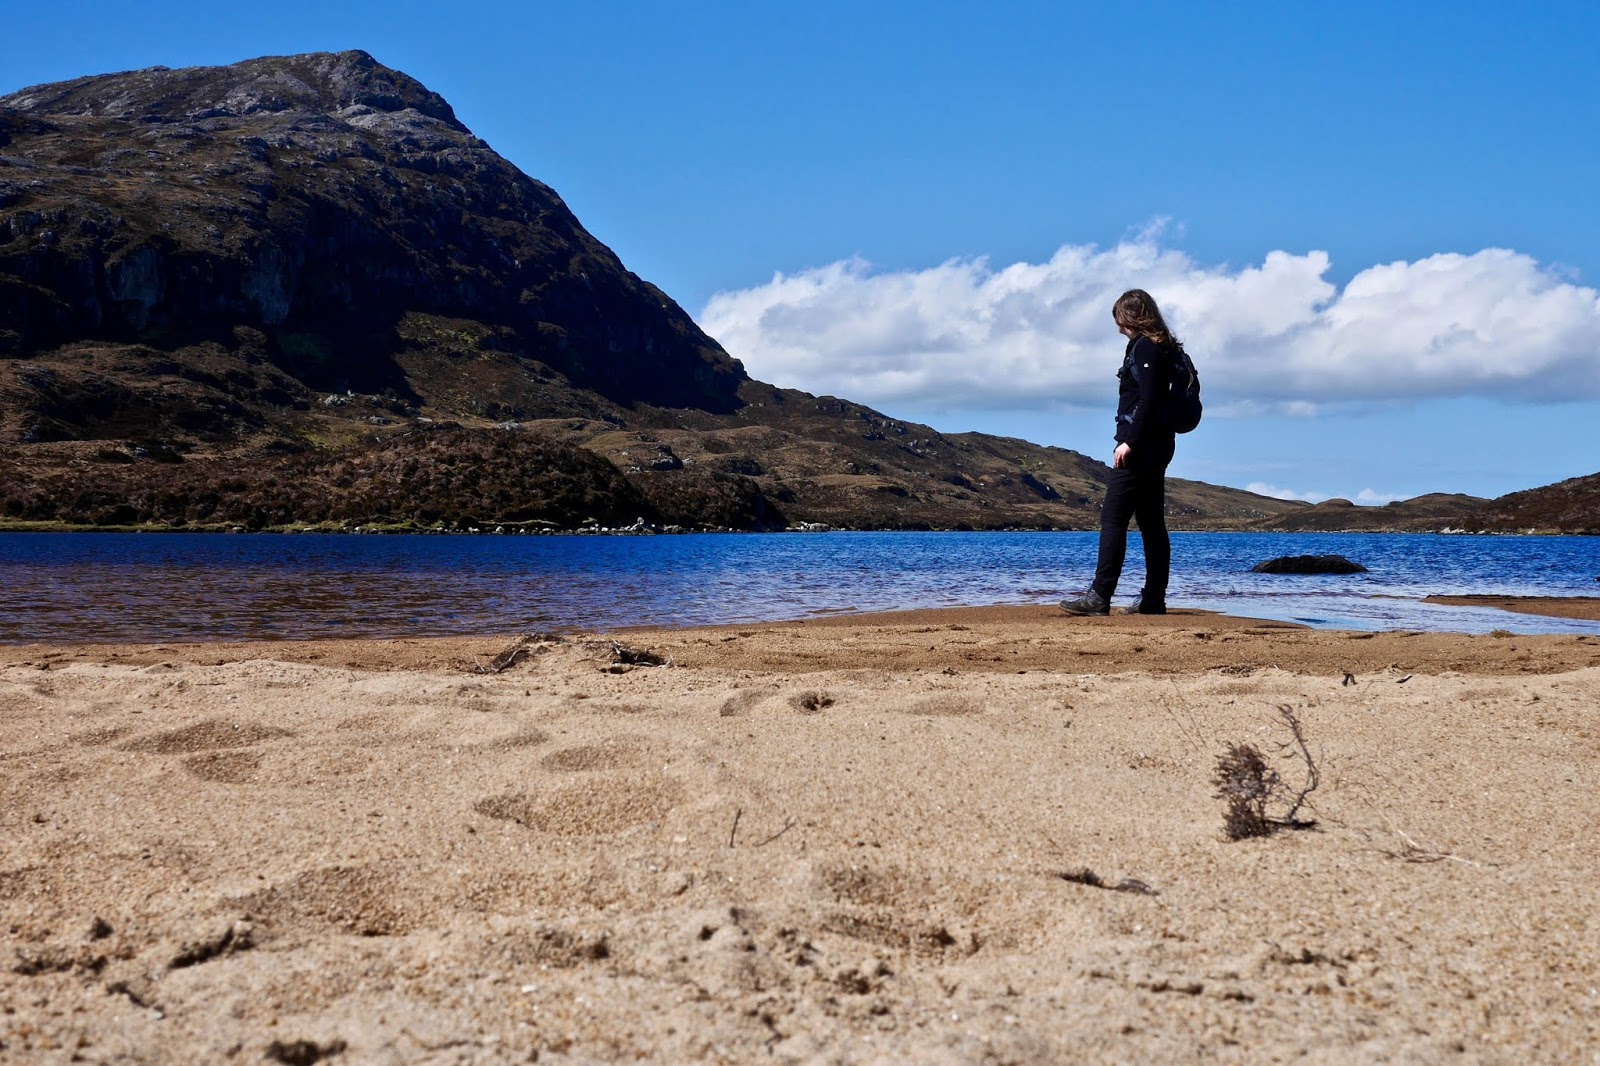 Climbing Eaval, Scotland,, Almost Chic and Cal McTravels during their Scottish Island Hopping in the outer Hebrides